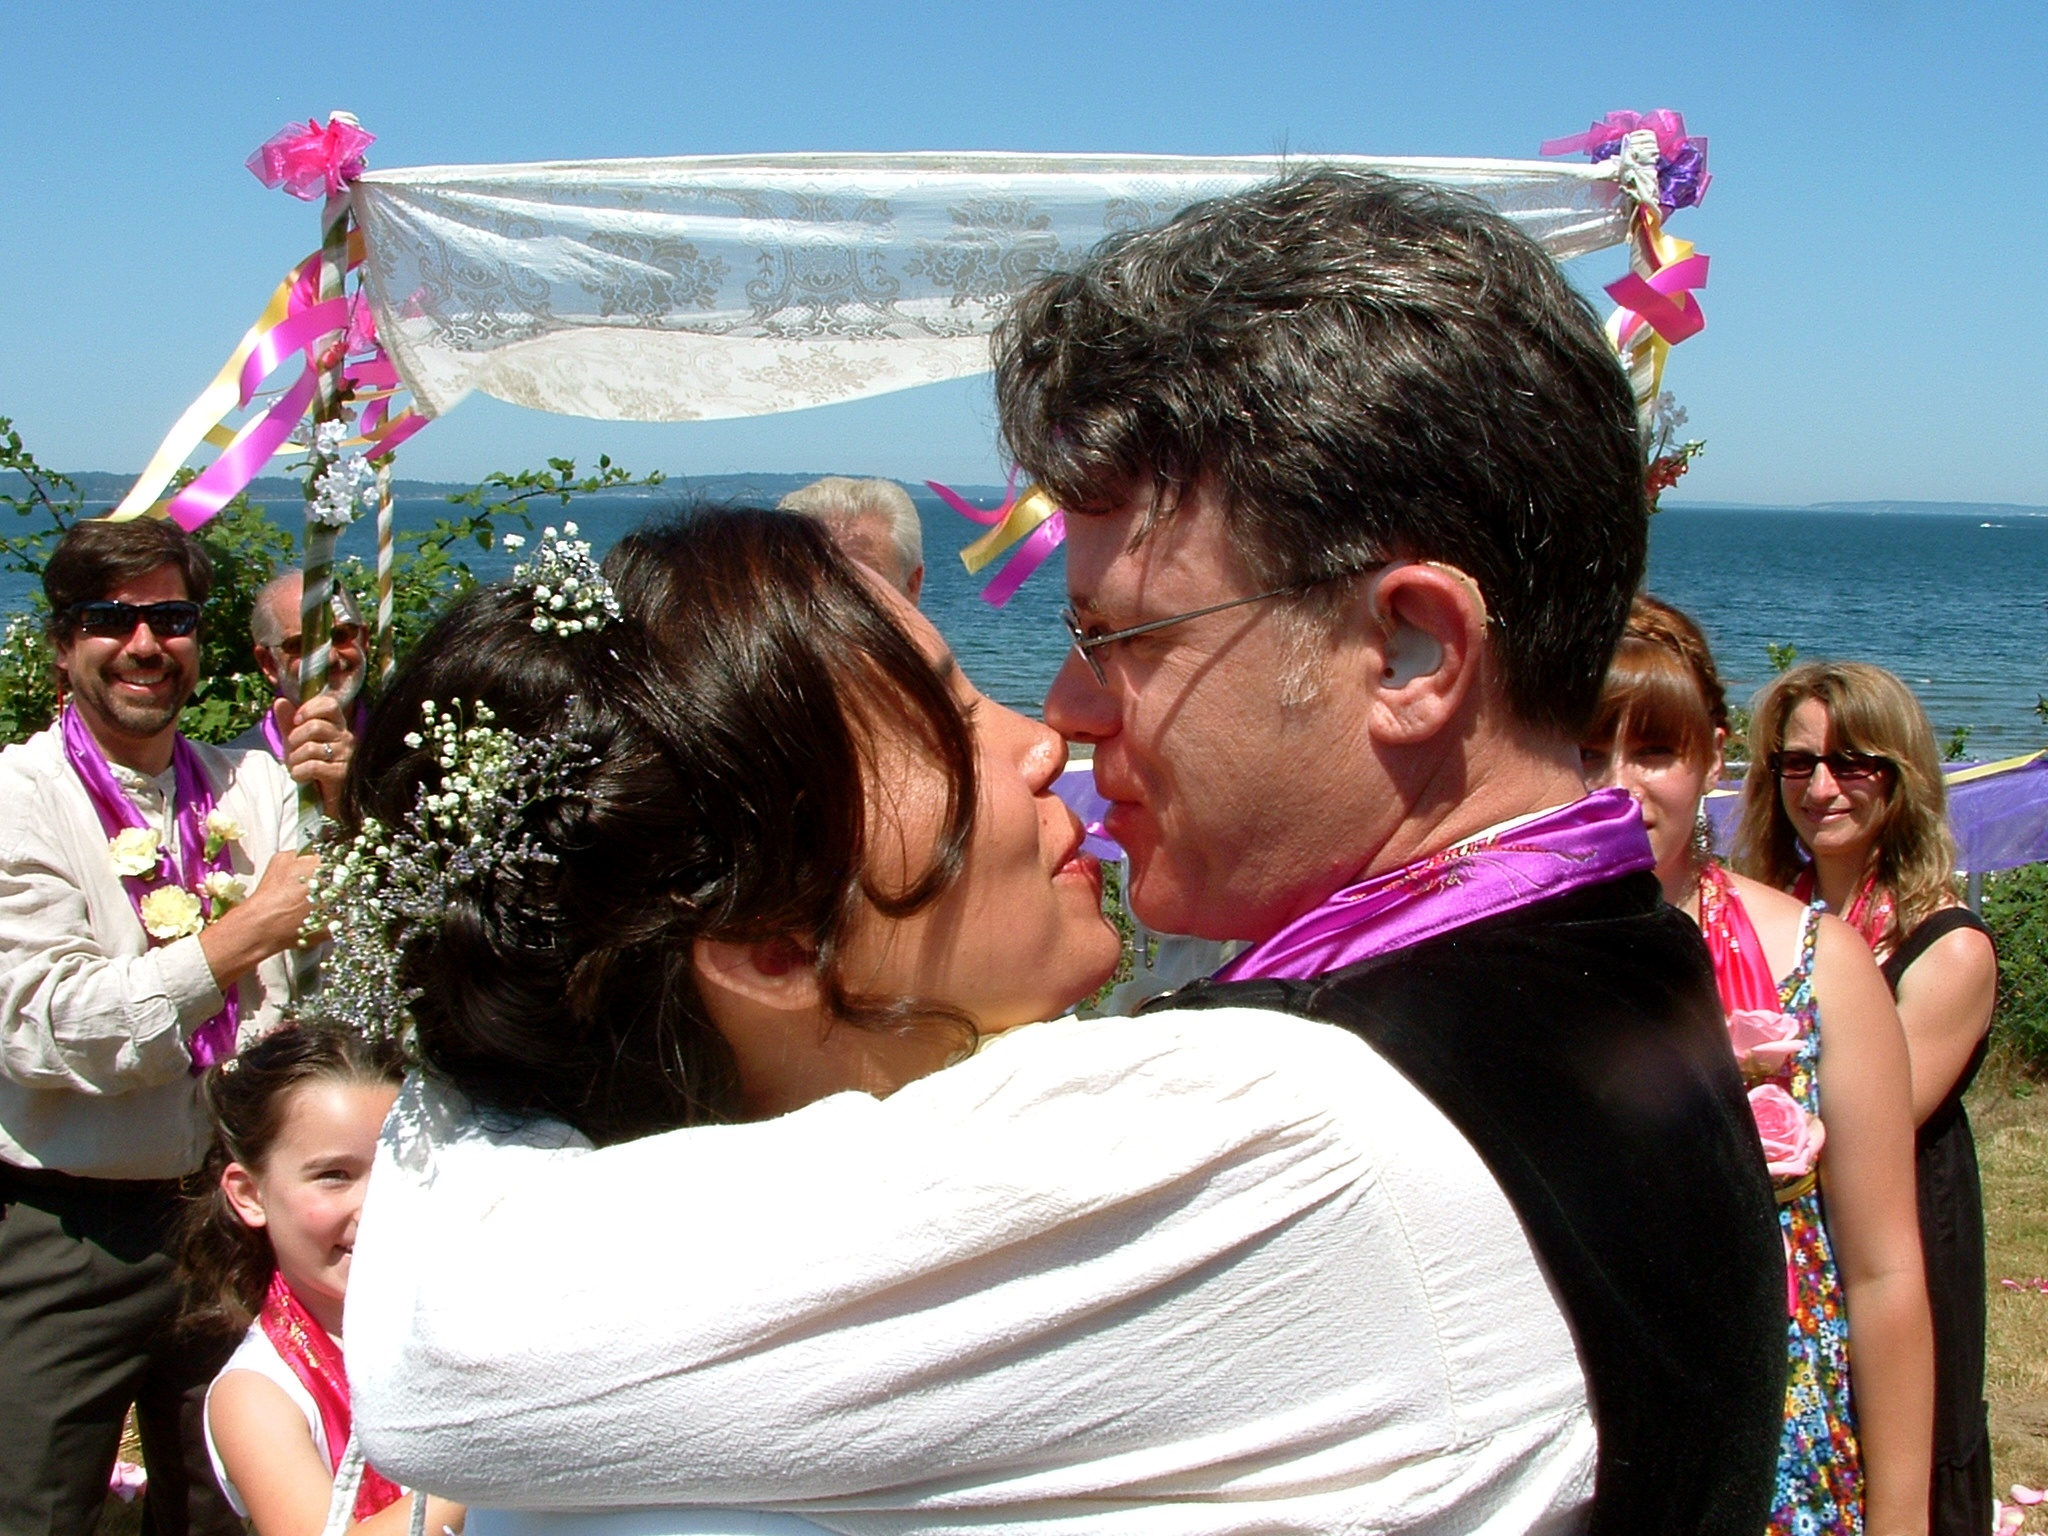 After the Kiss...Kristina & William at their Wedding, Saturday 11 July 2009.